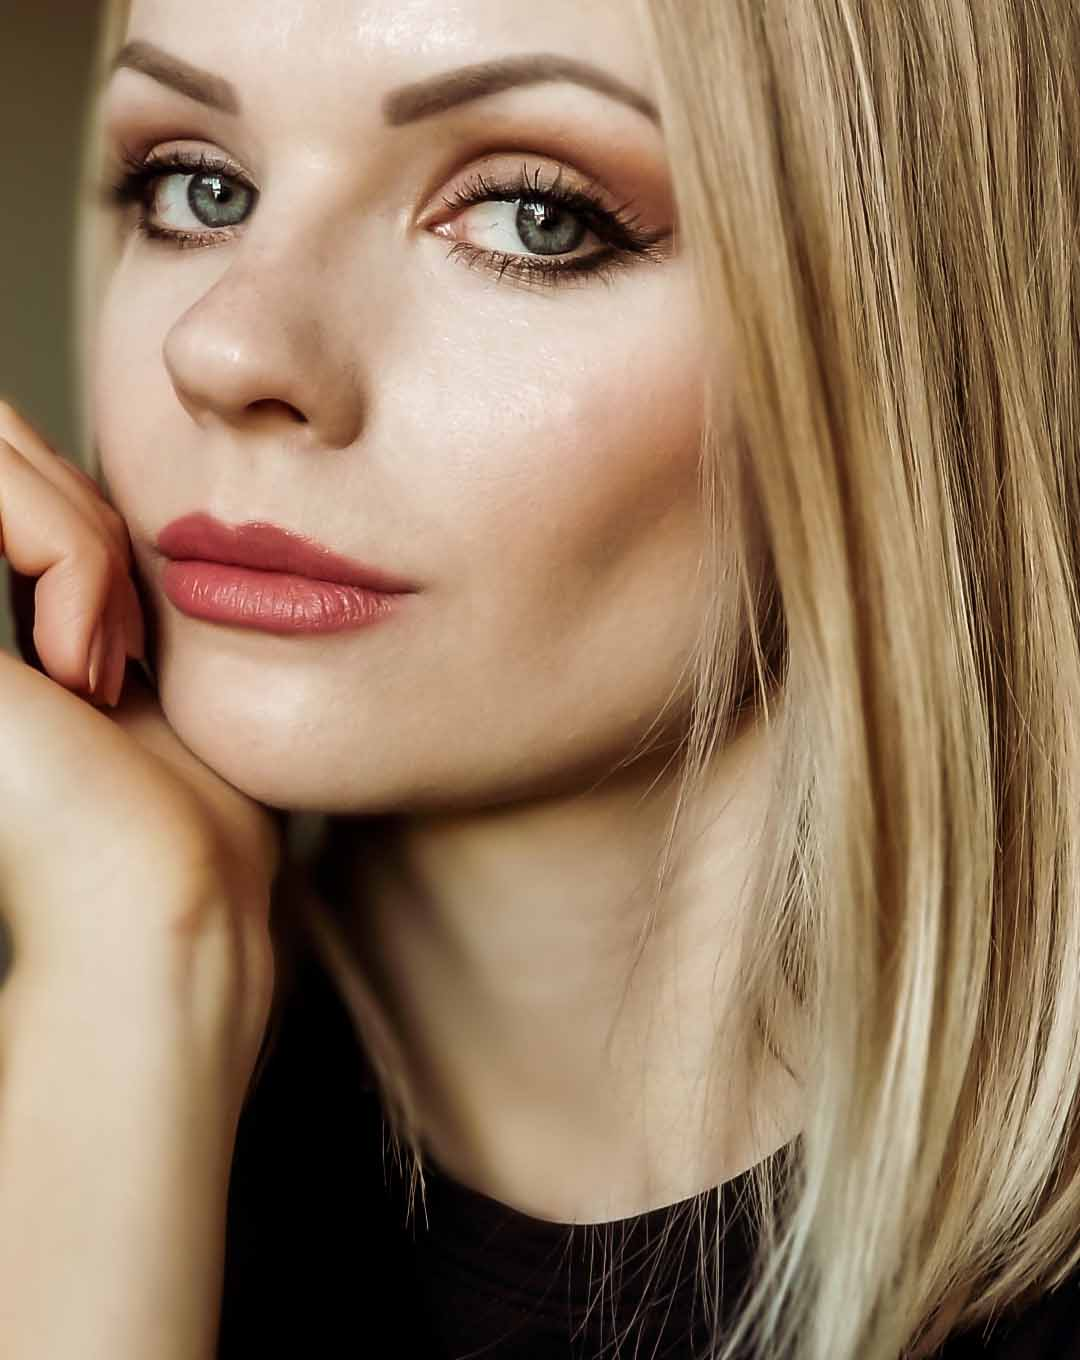 Image of Barbara A wearing a cat eye makeup look including her whole face makeup.